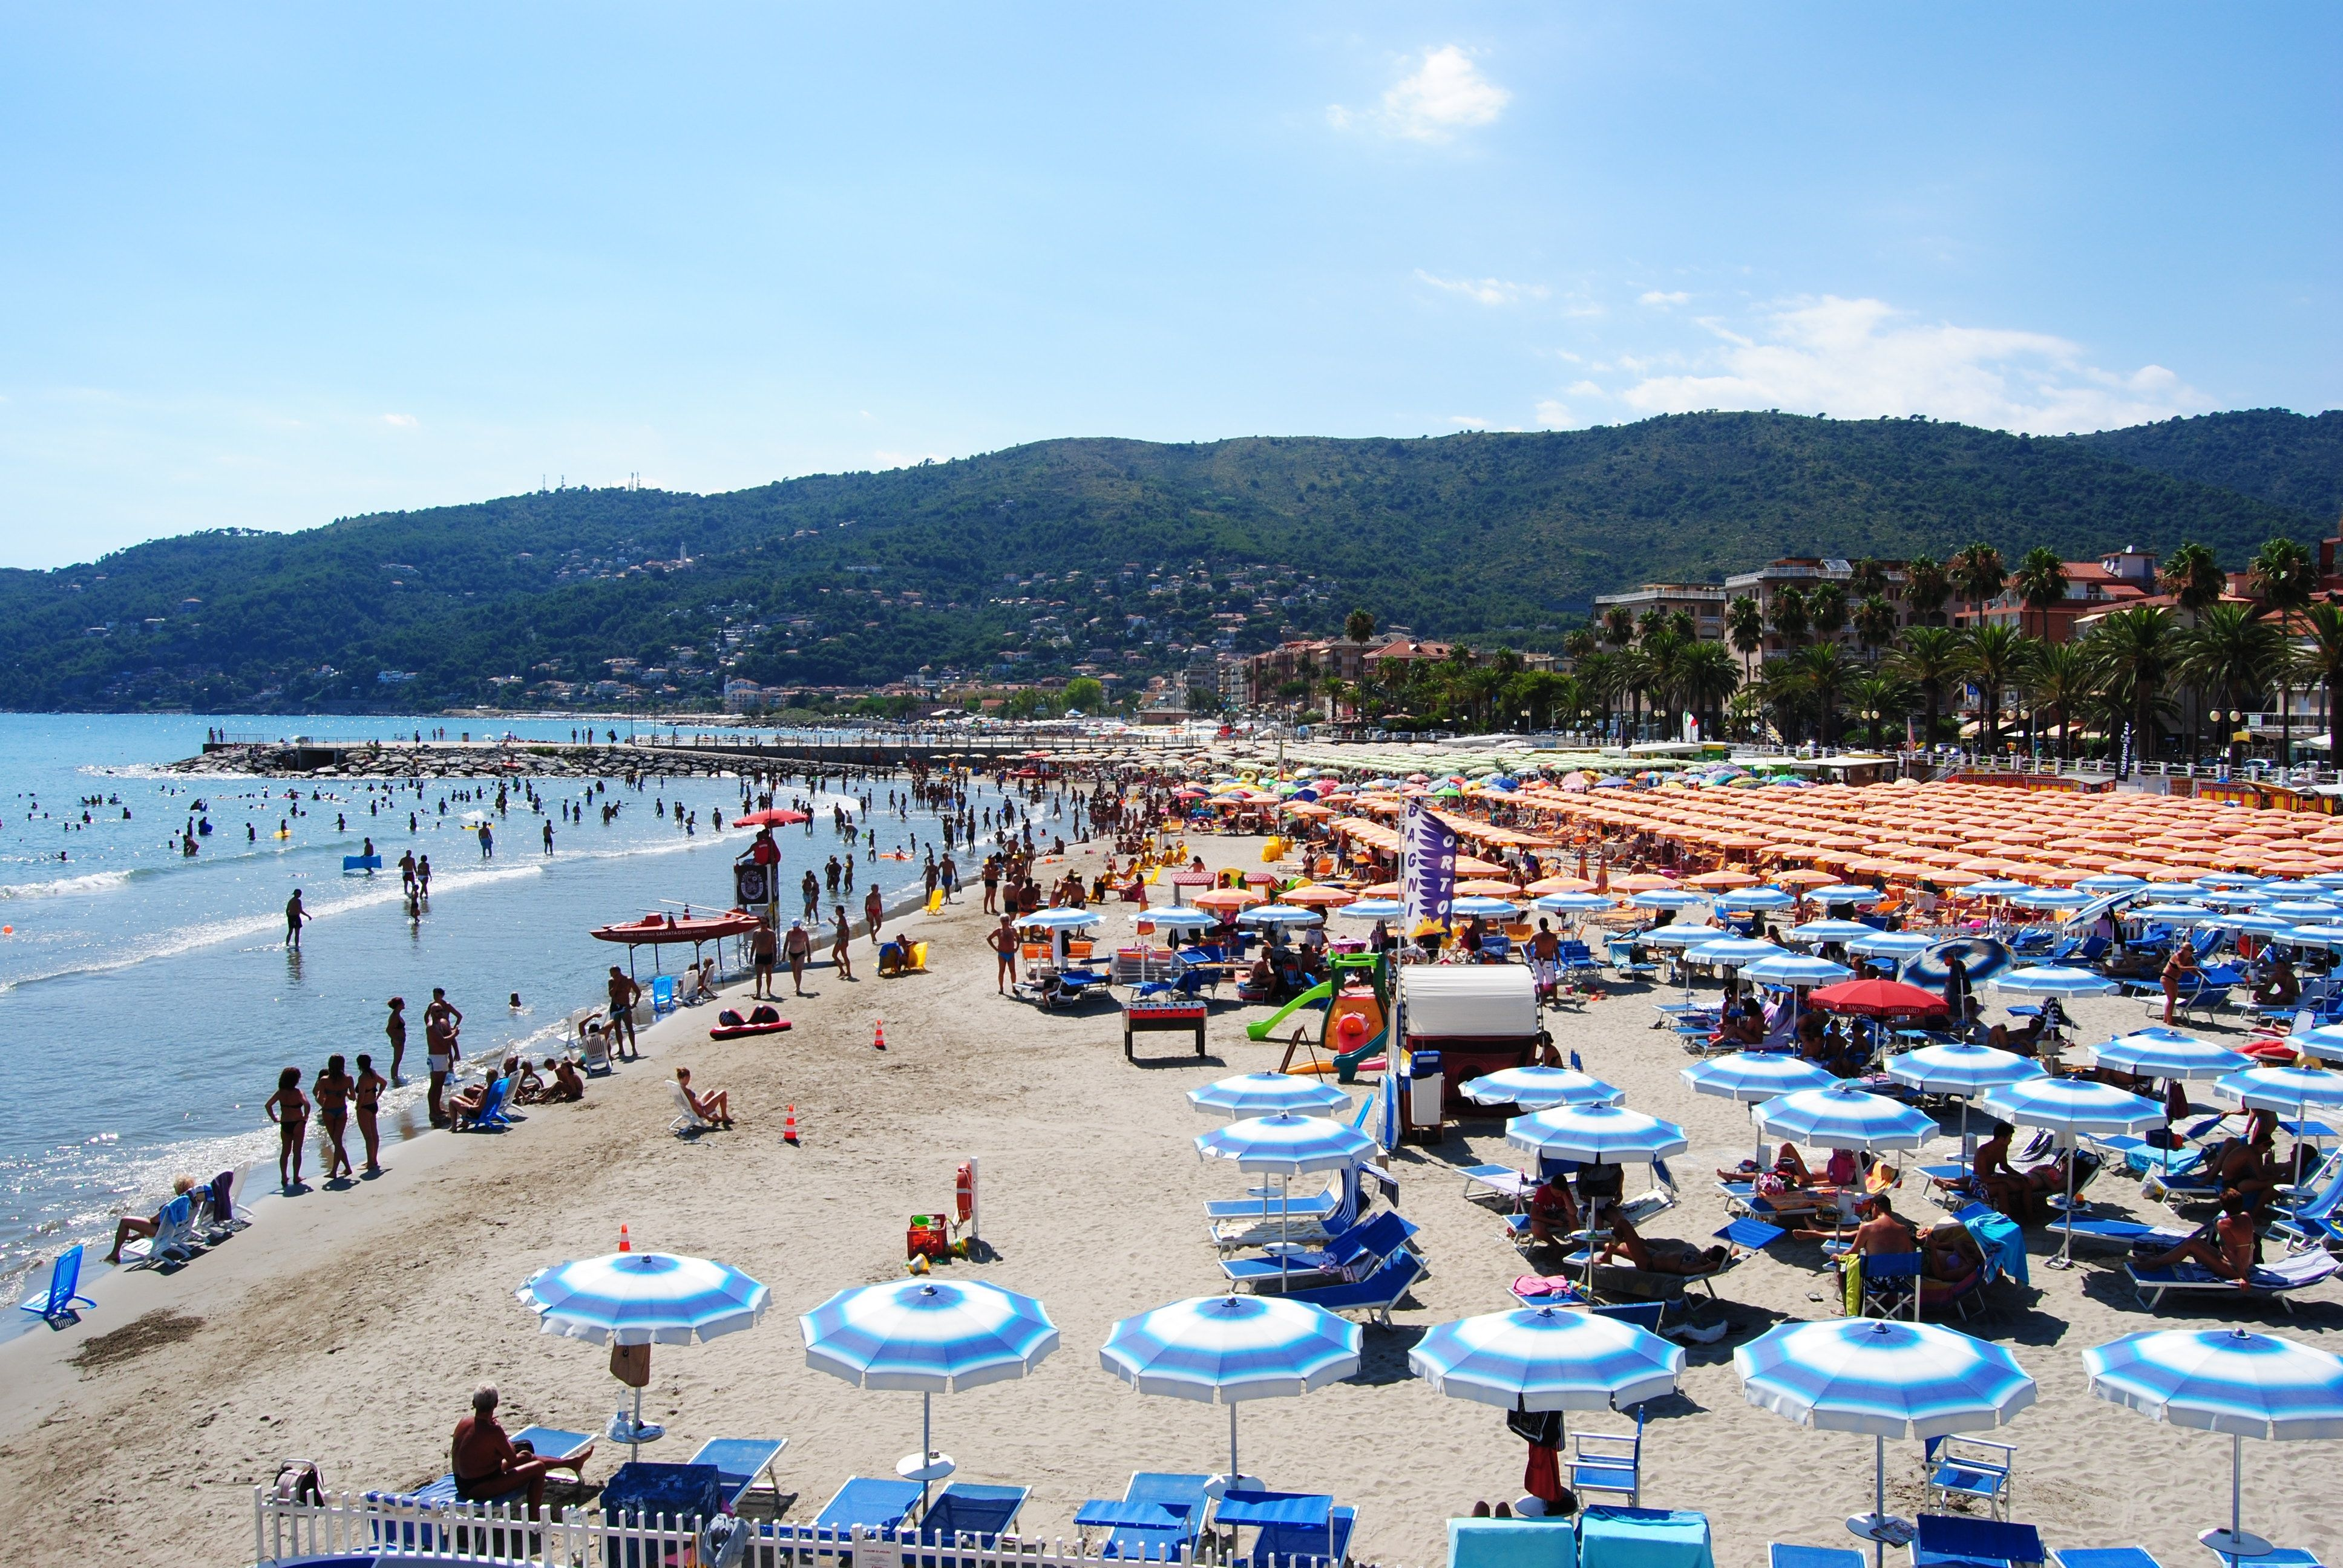 The coastal resort of Marina di Andora is a popular